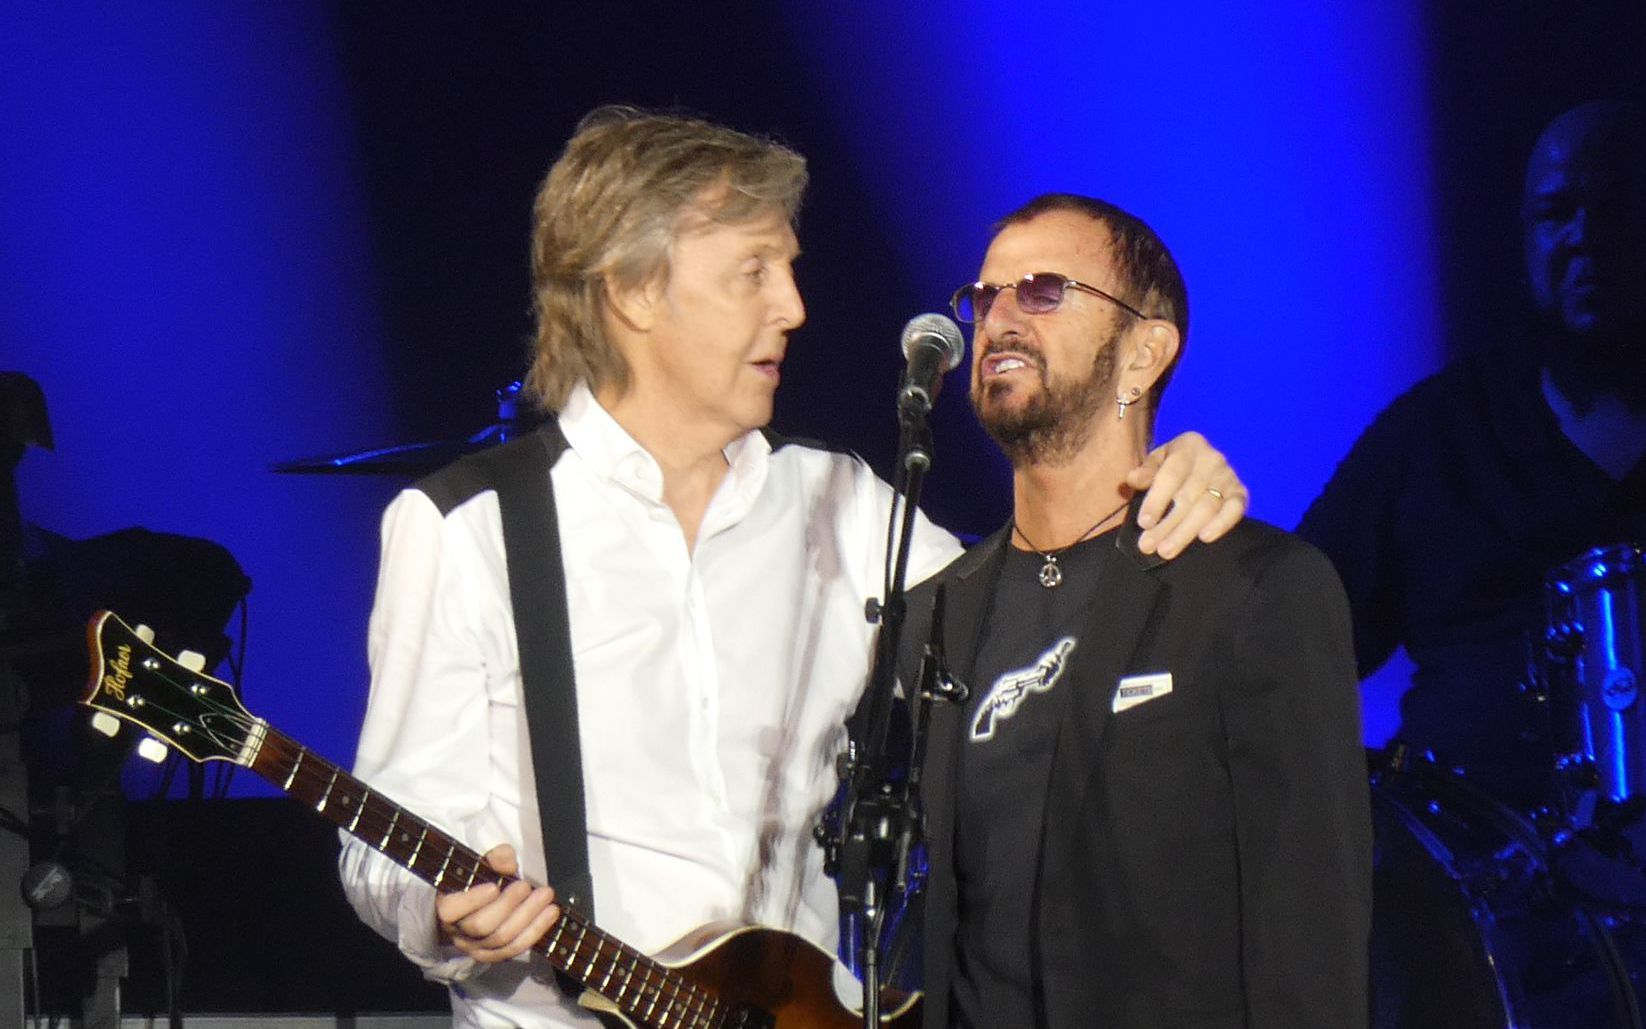 Watching Paul McCartney and Ringo Starr Play Beatles Classics Is an Absolute Delight